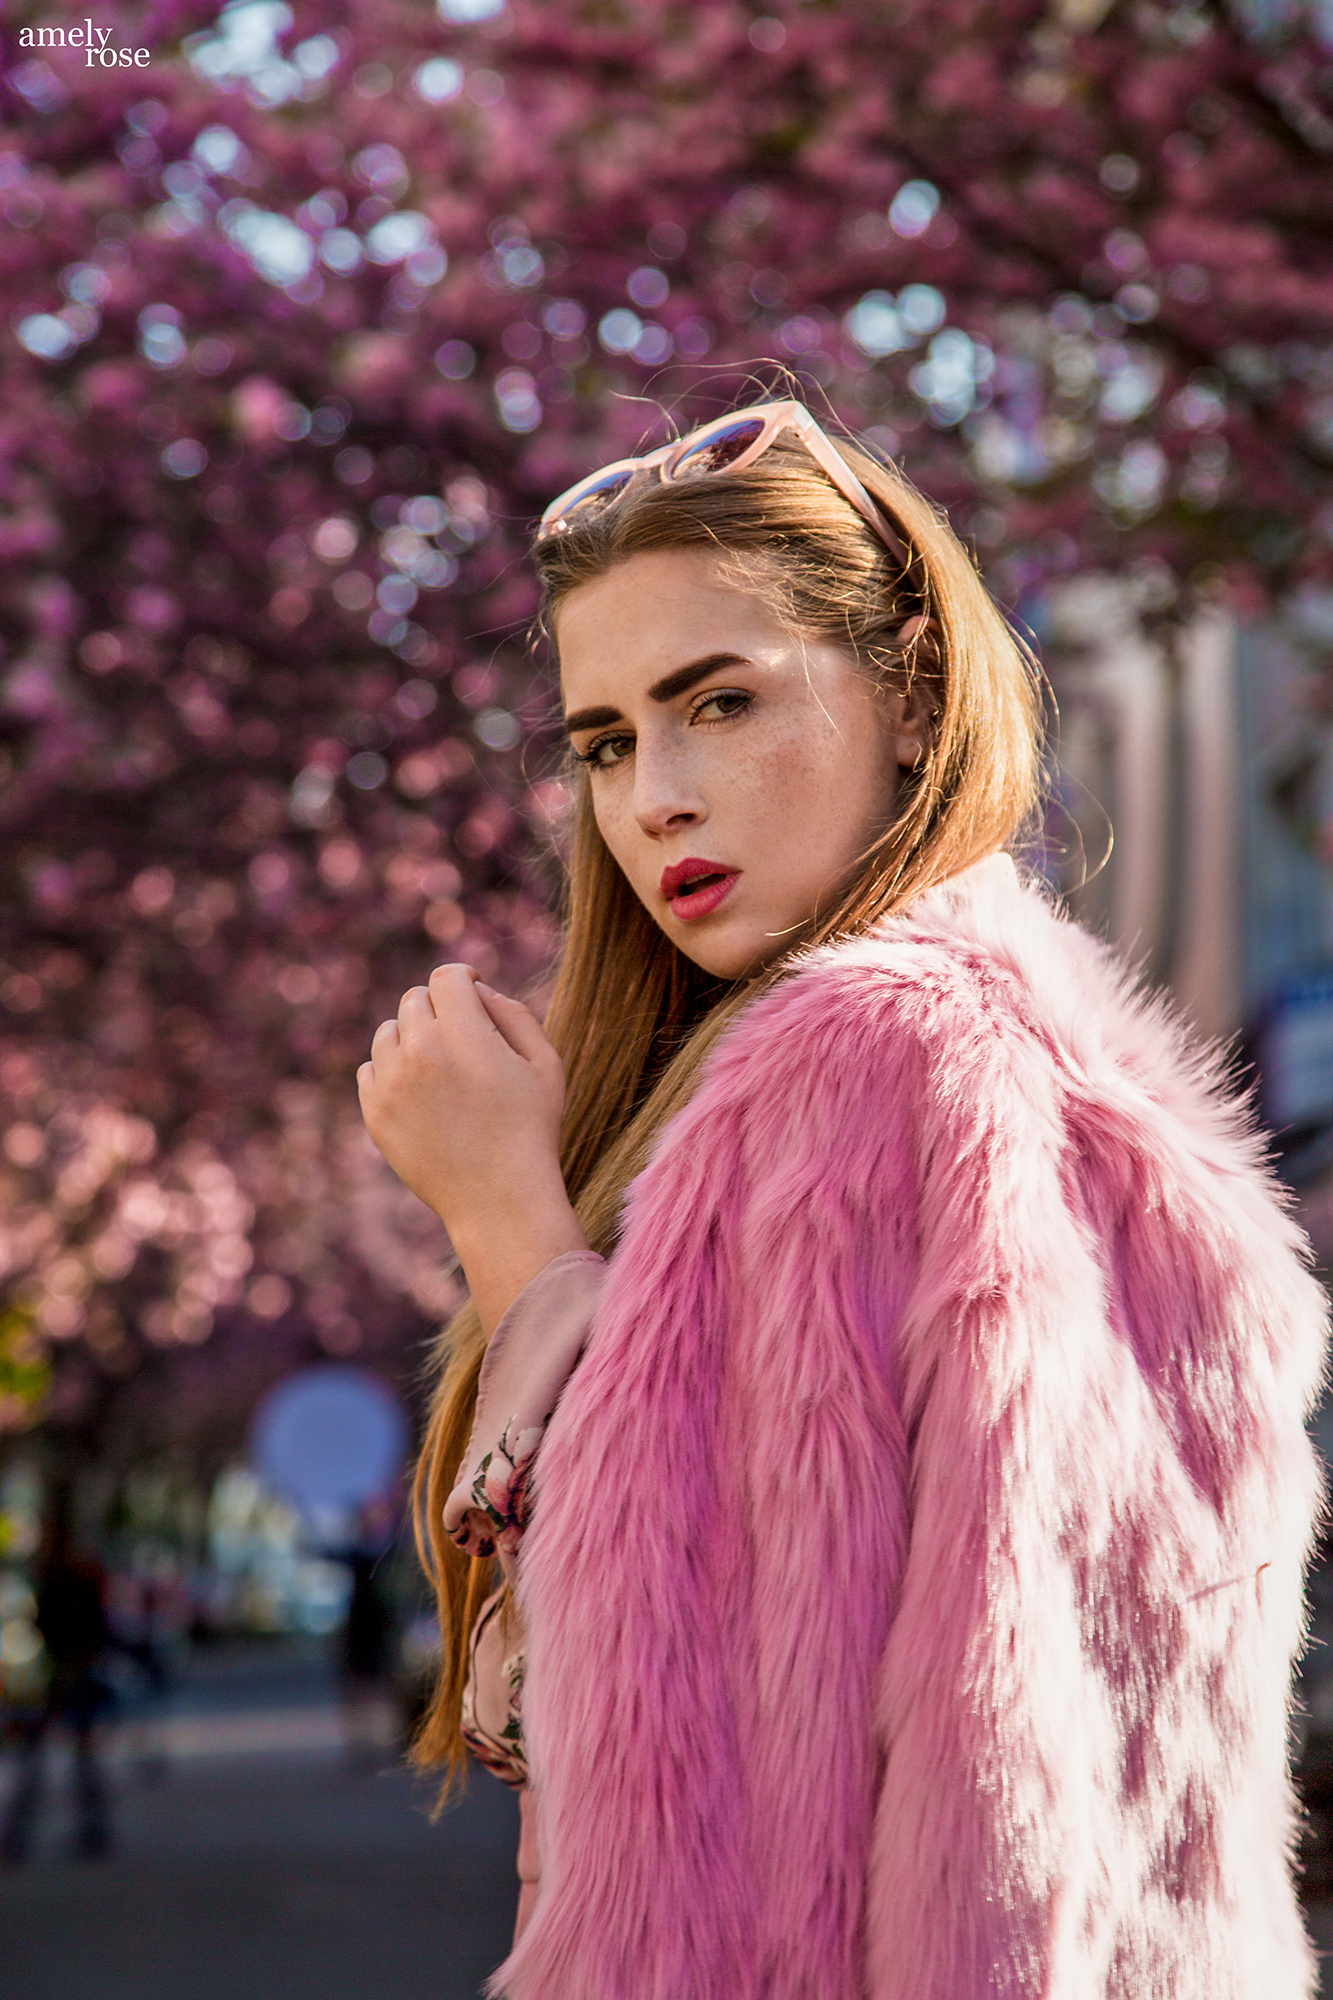 Amely Rose german fashionblogger in Bonn between the cherryblossom – fashioneditorial – spring outfit - kirschblüten altstadt